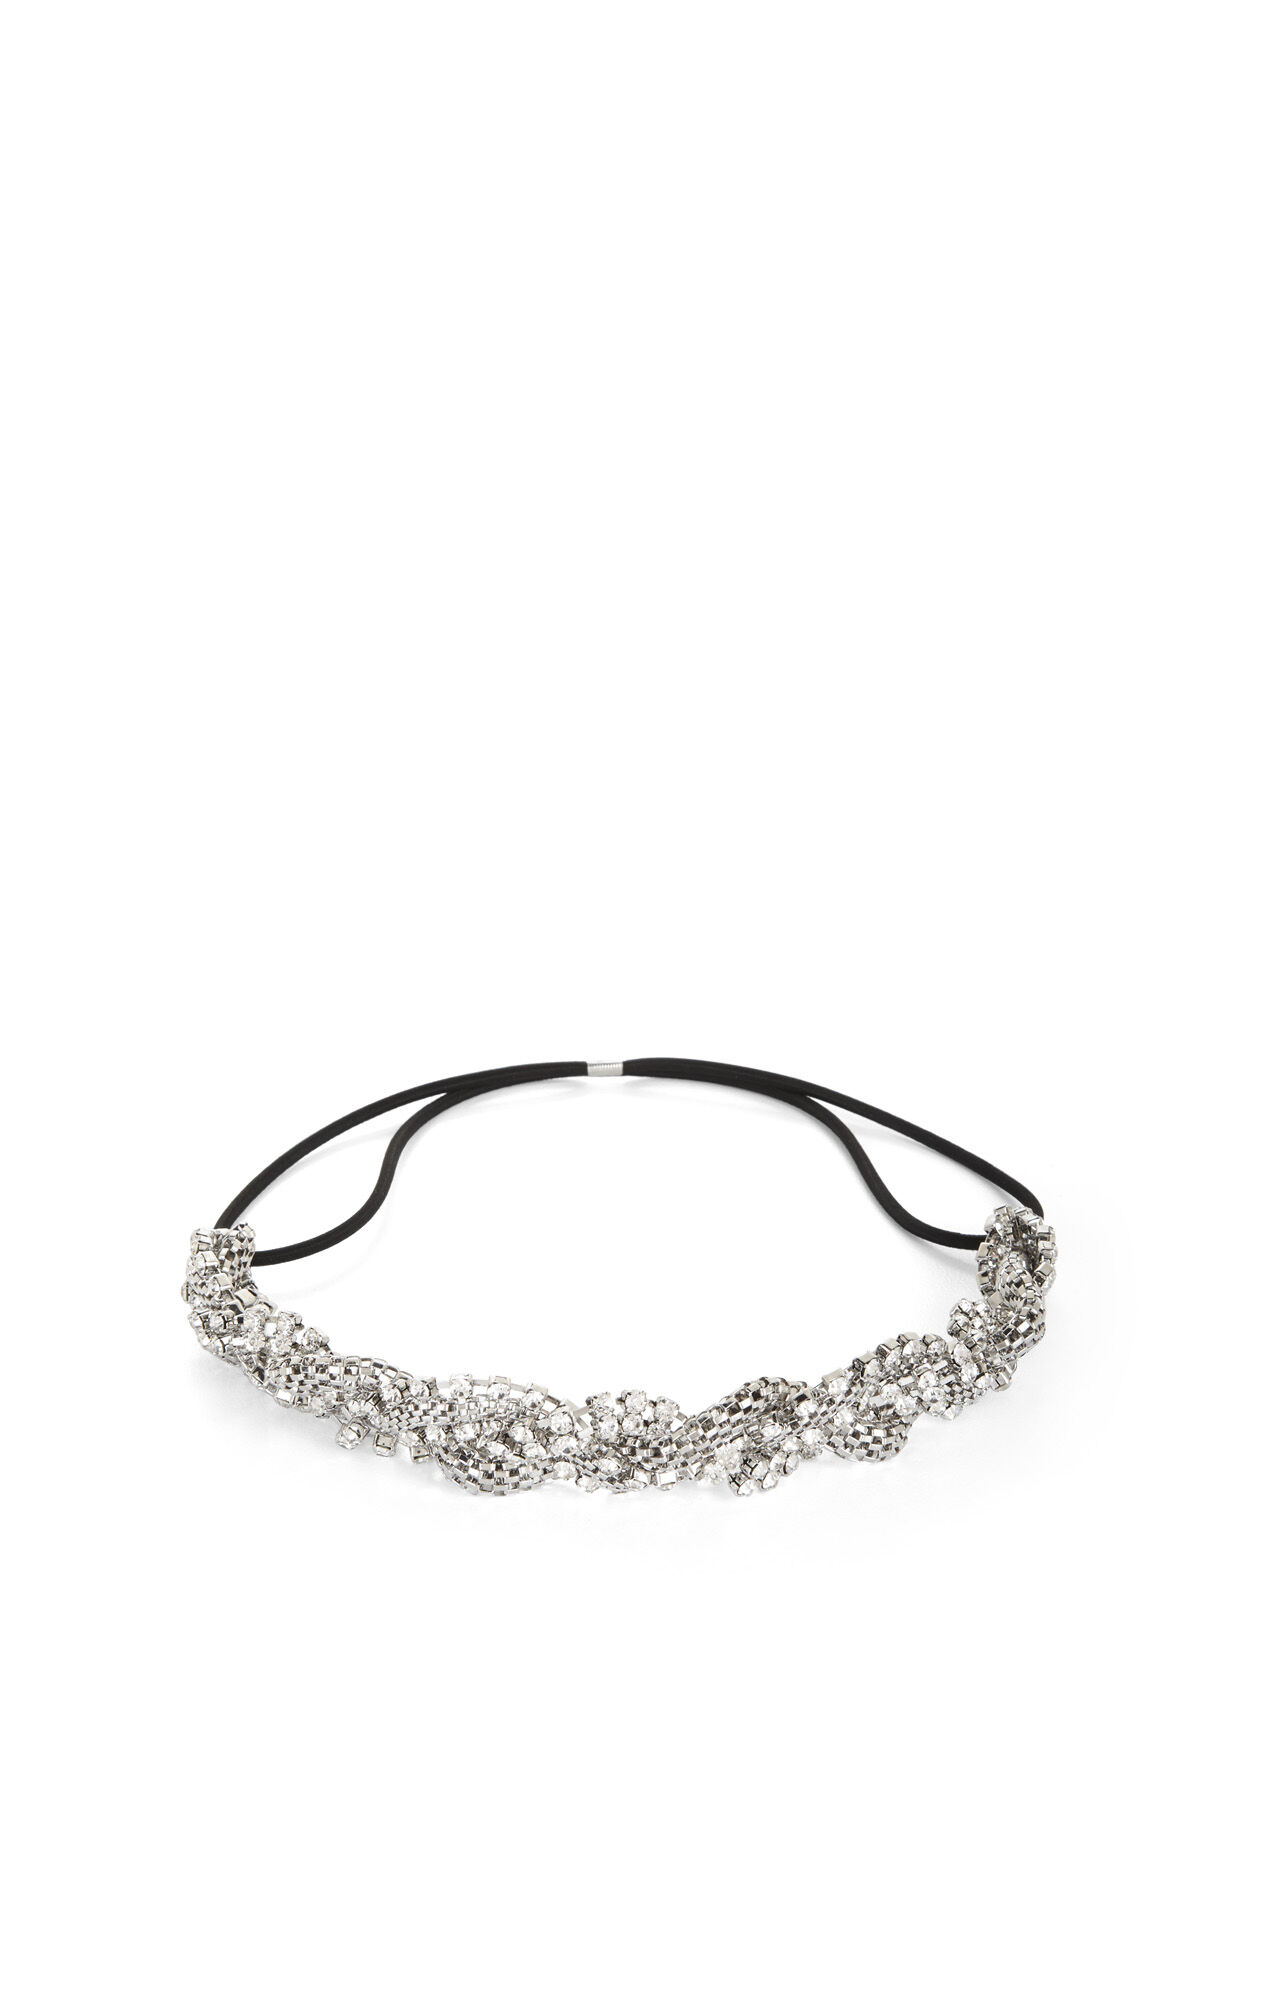 Braided-Chain Elastic Headband